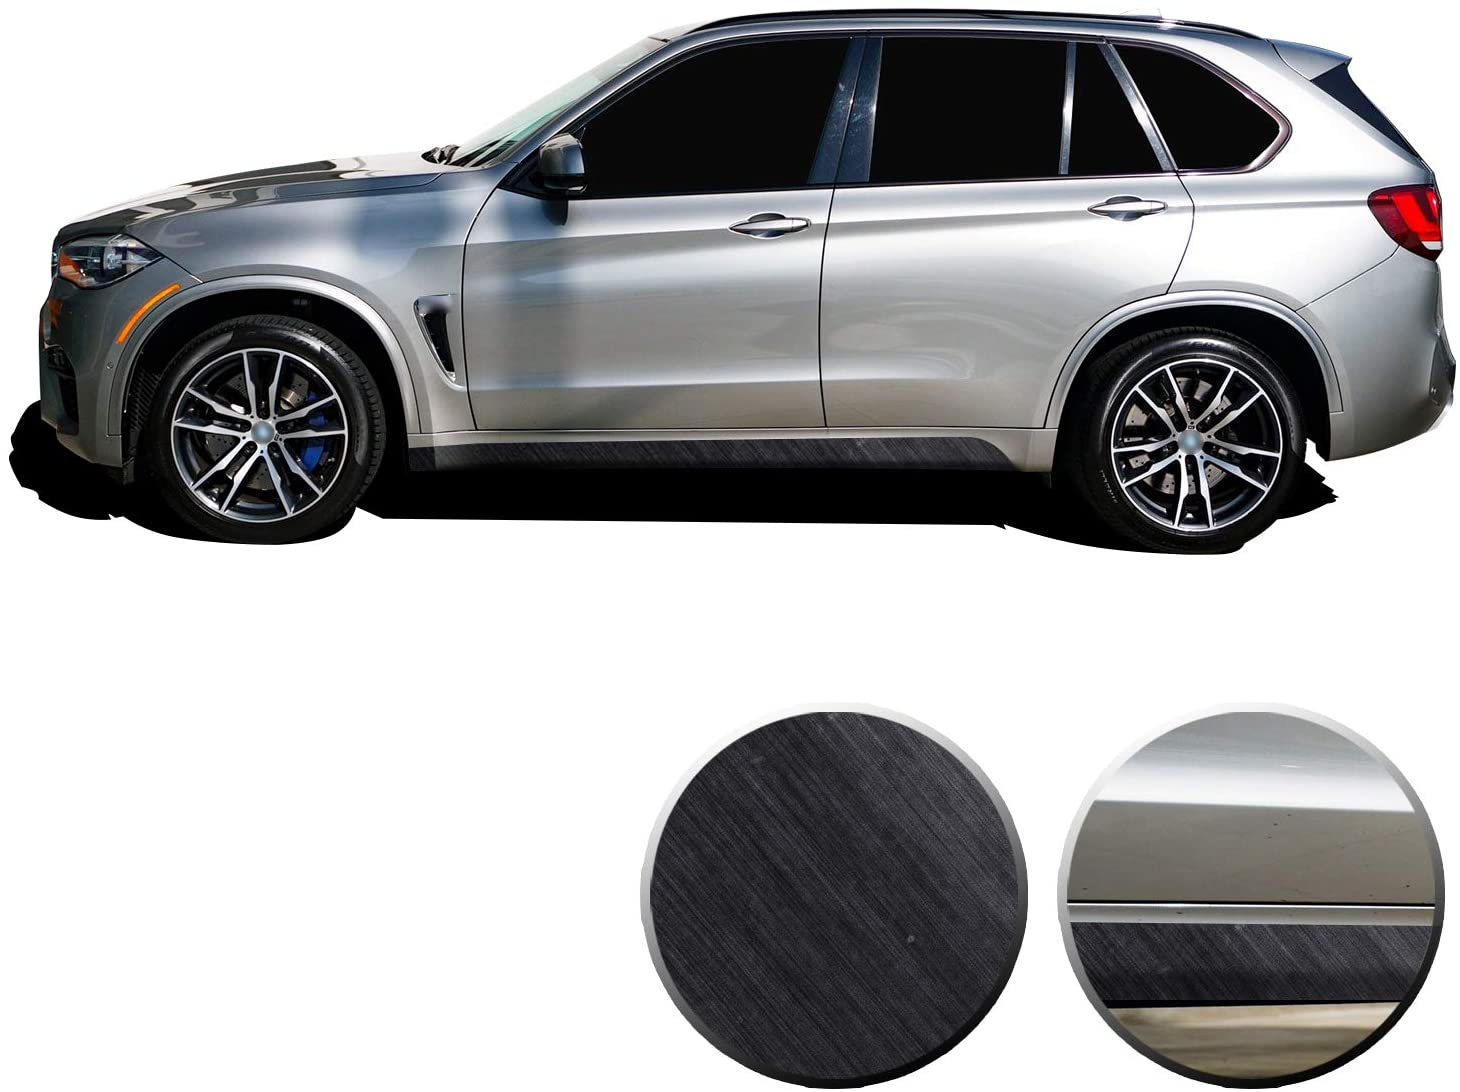 Optix Lower Panel Side Skirt Accent Vinyl Overlay Wrap Trim Compatible with BMW X5 F15 F85 2014 2015 2016 2017 2018 - Metallic Brushed Aluminum Black